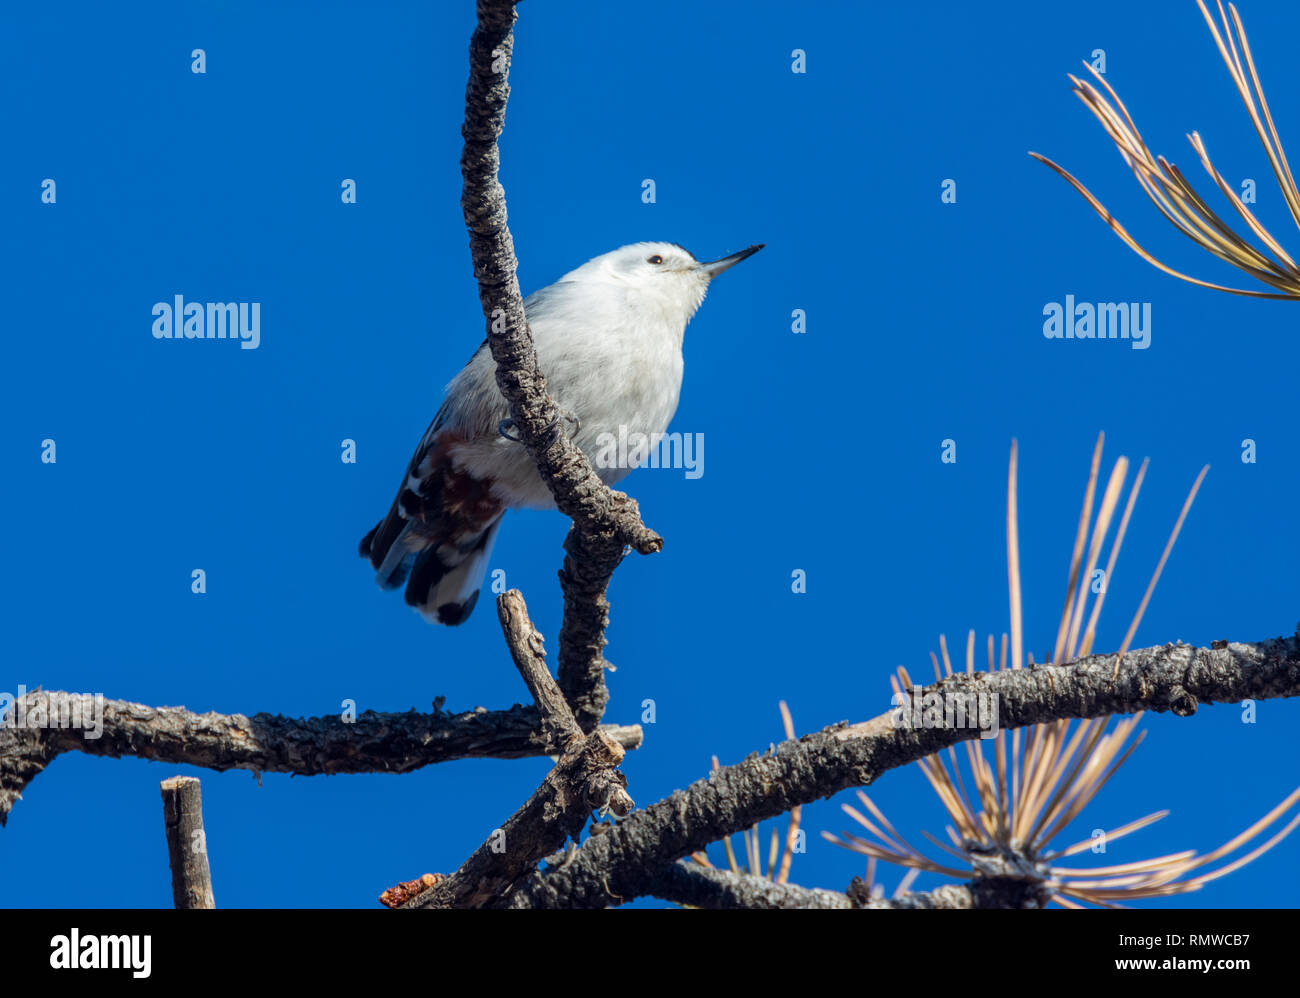 White-breasted Nuthatch (Sitta carolinensis) at top of Ponderosa pine tree, sunny morning, Castle Rock Colorado US. Photo taken in December. - Stock Image